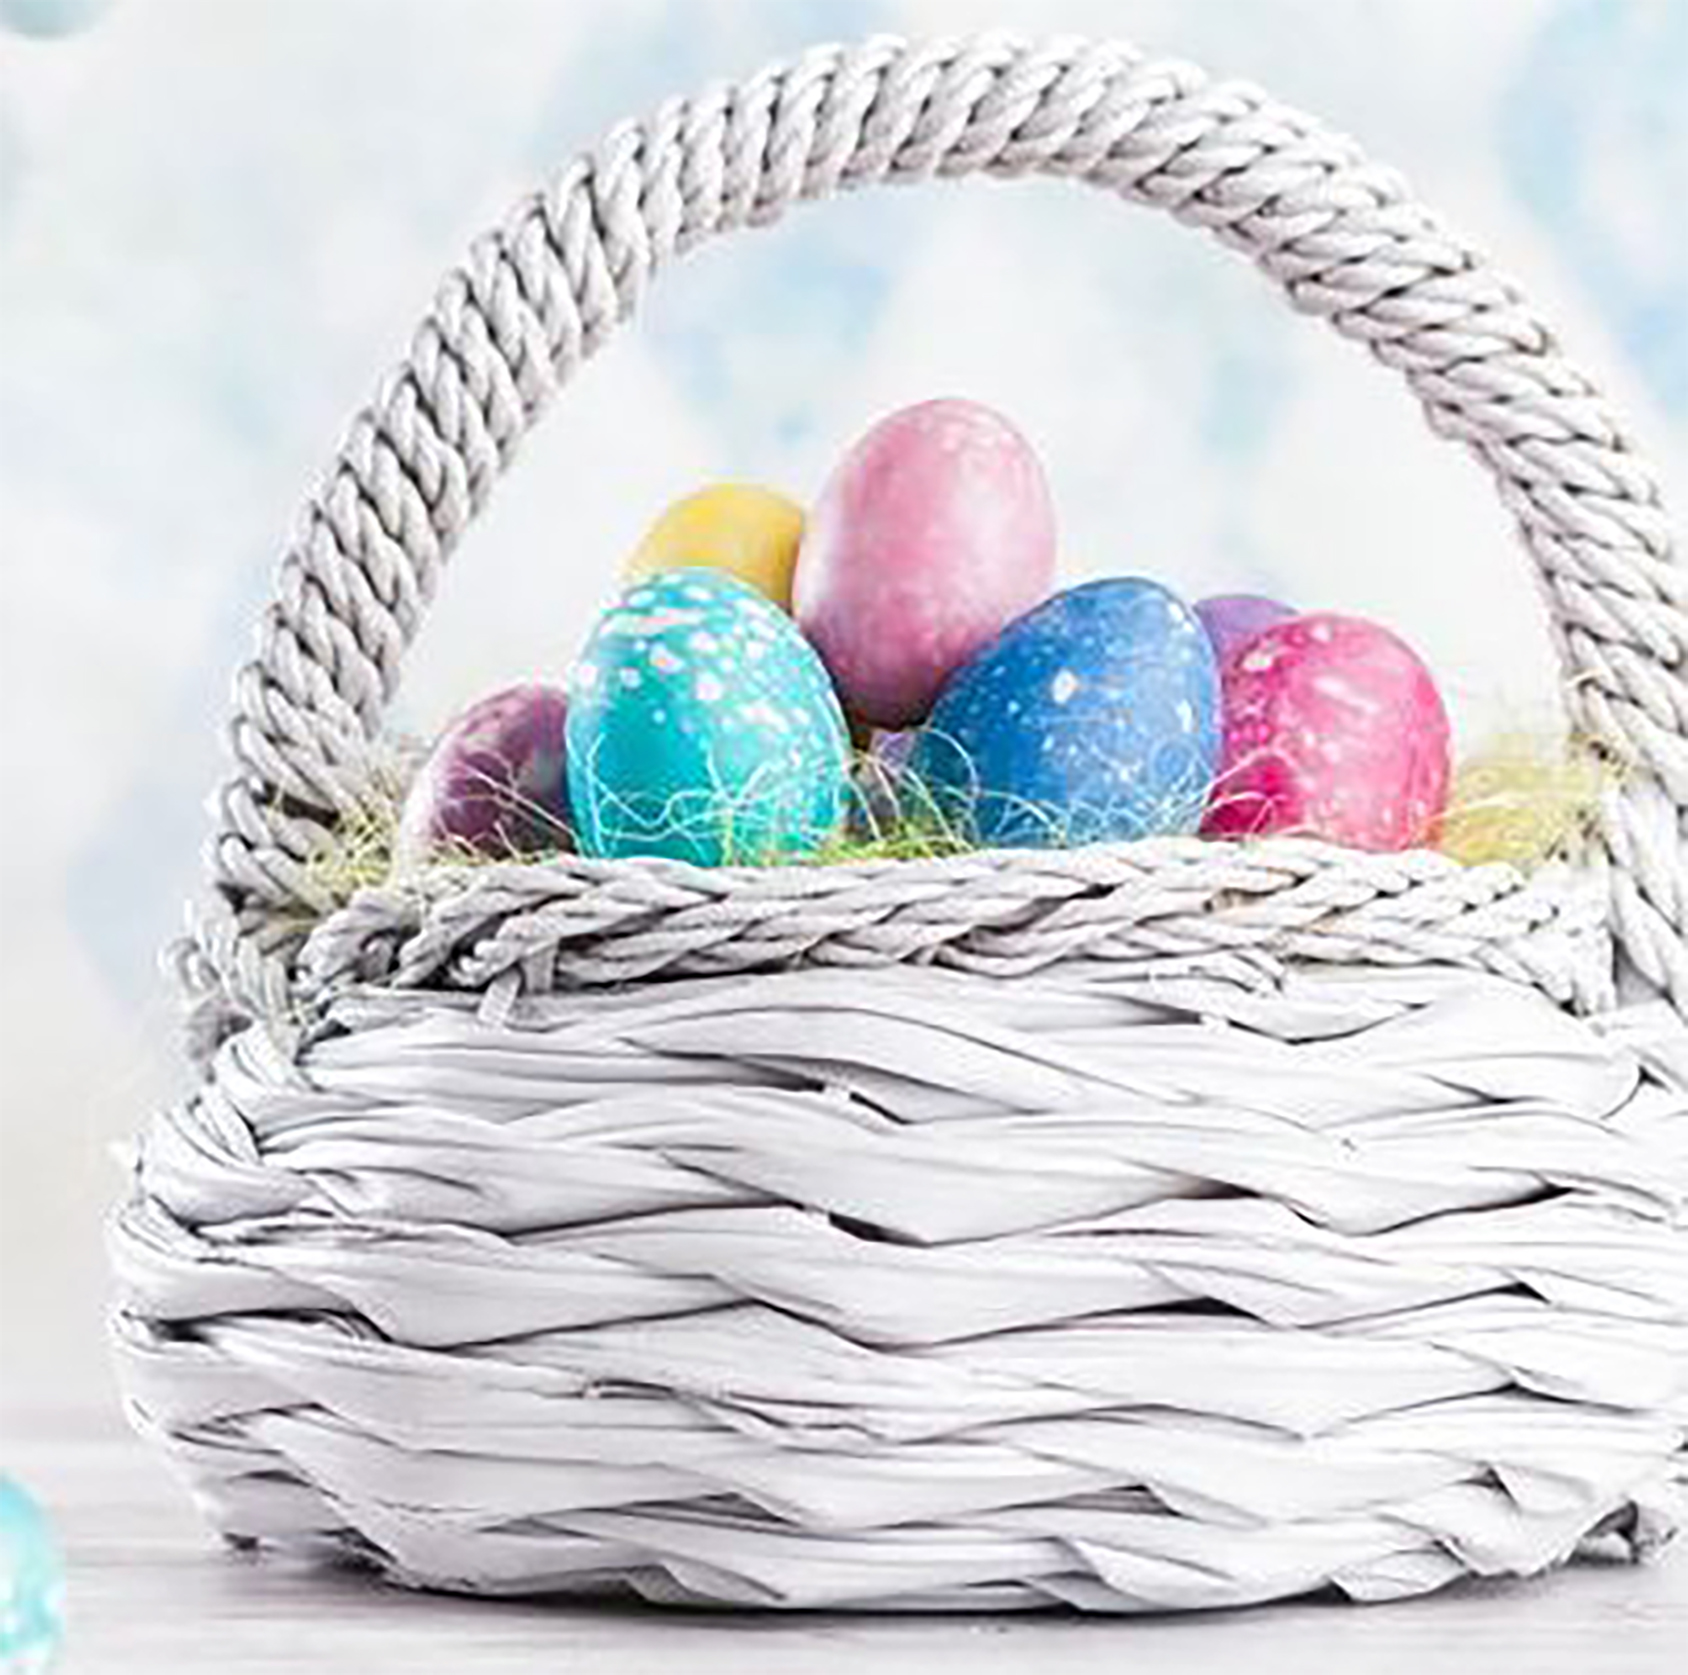 We have lots of baskets perfect for Easter